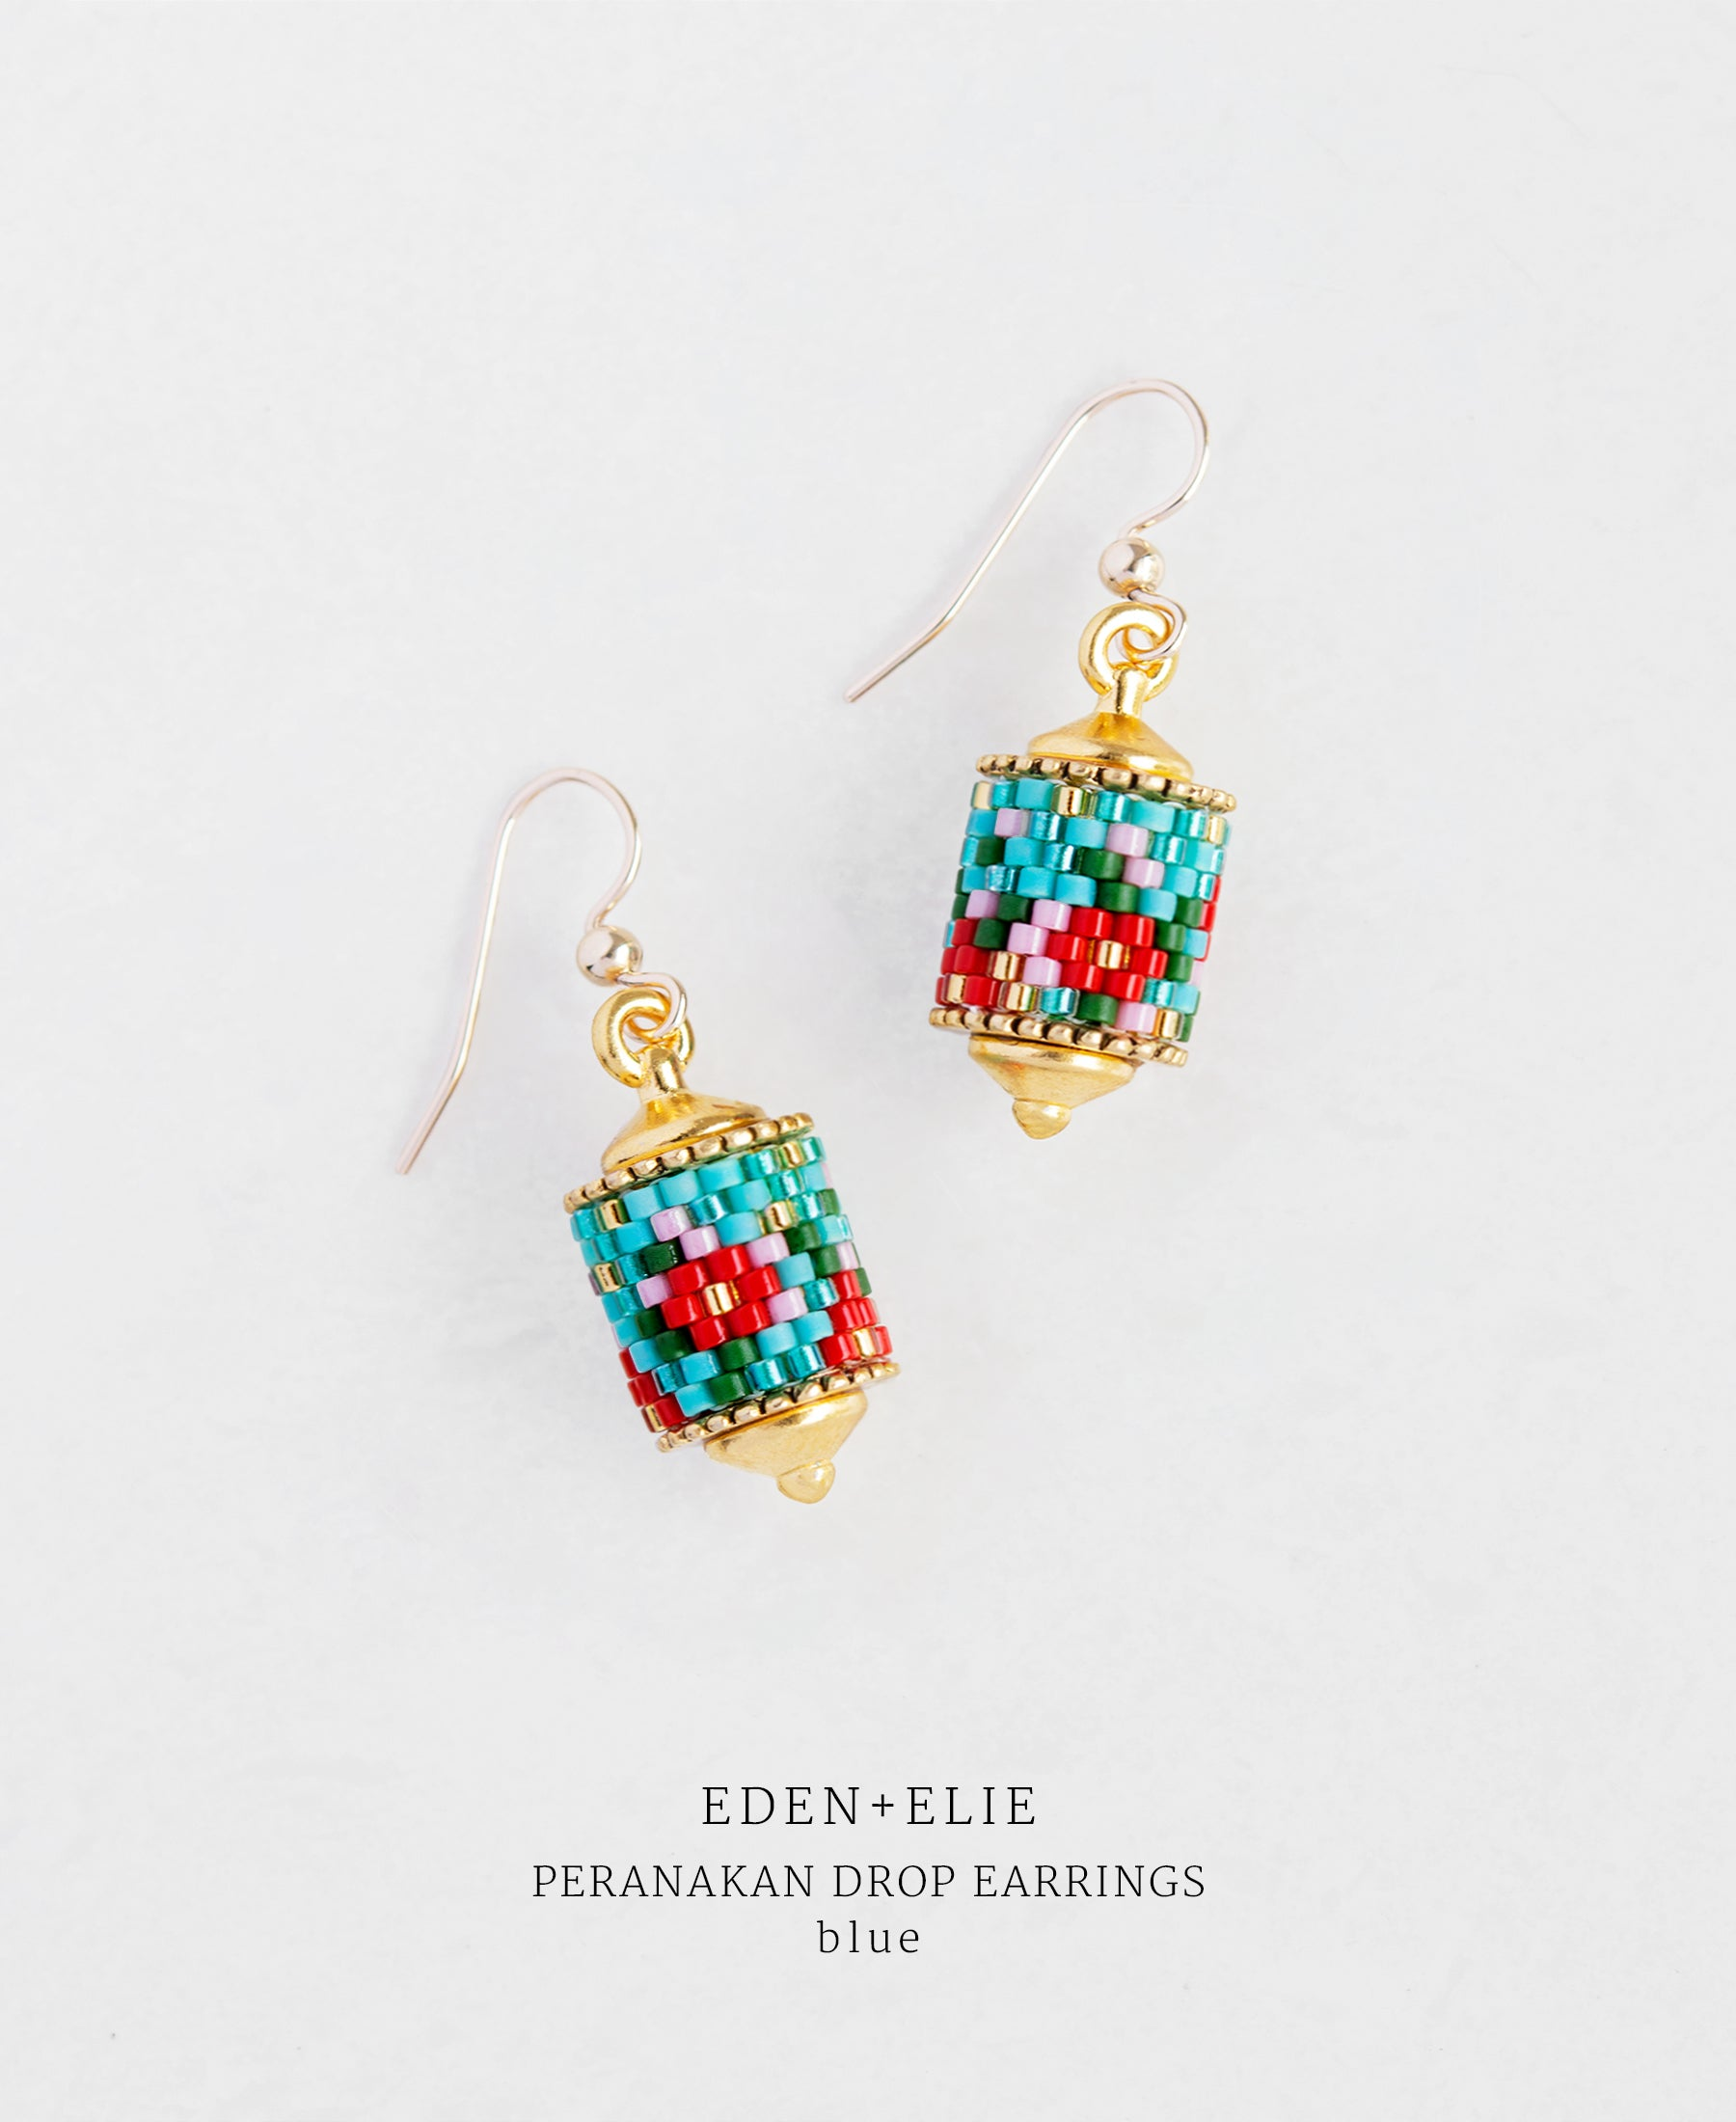 EDEN + ELIE gold plated jewelry Modern Peranakan drop earrings - blue